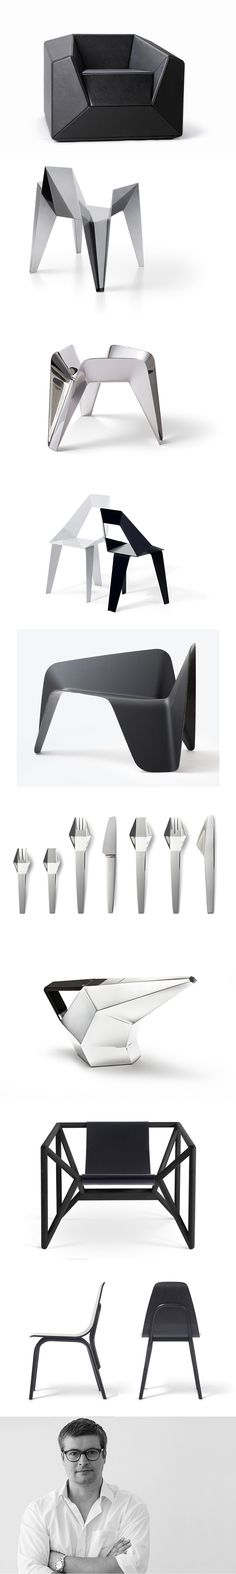 Thomas Feichtner / FX10 lounge chair / Pixel chair / fruit bowl / Axiome chair / Carbon char / cutlery / Viennese pot / M3 chair / Tram chair / deconstructive